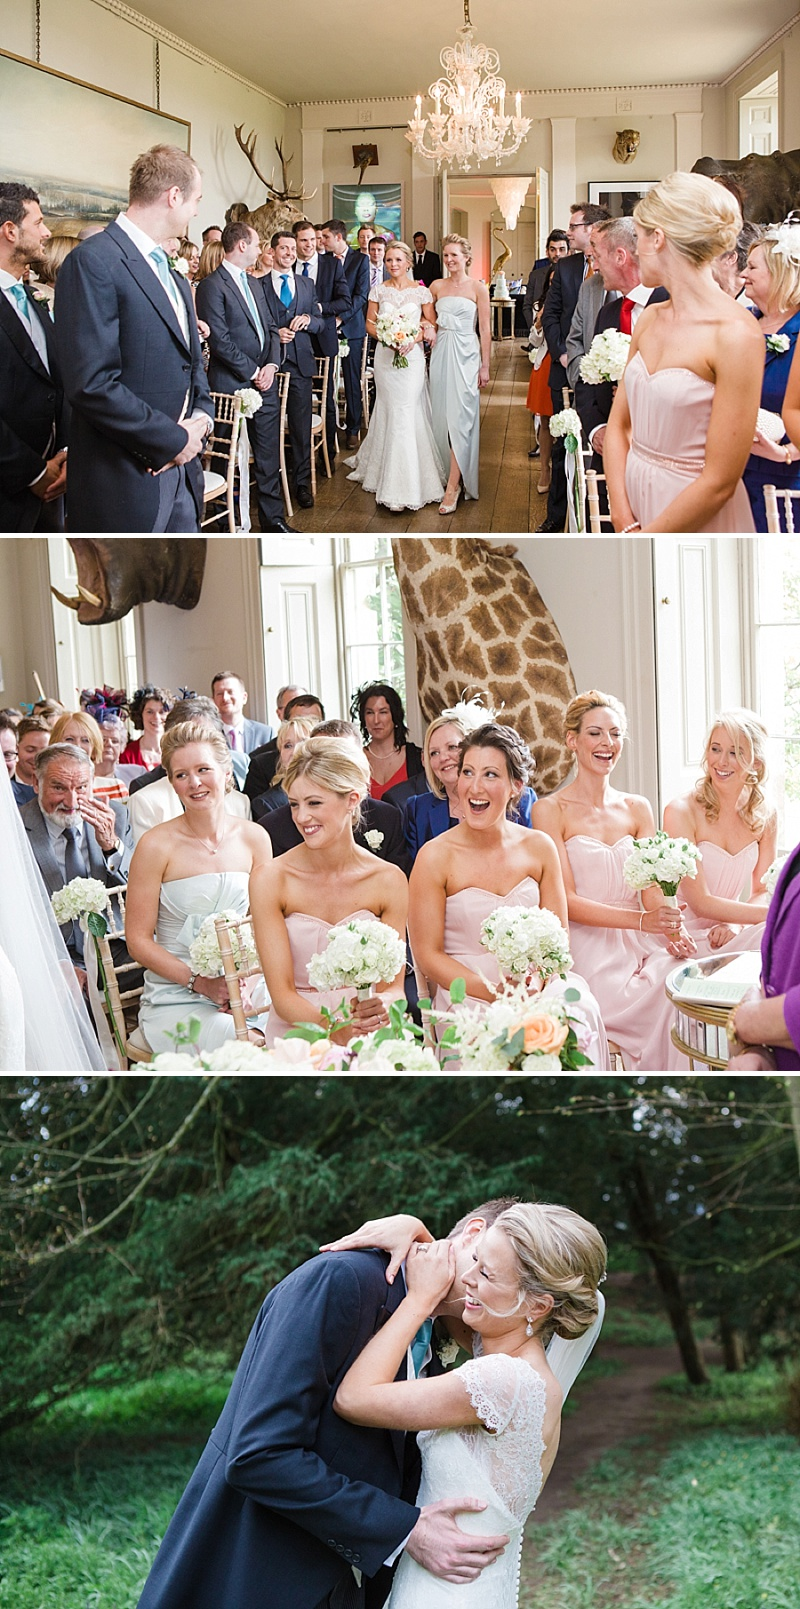 Elegant Wedding At Aynhoe Park With A Pastel Colour Scheme And Bride In A Lace Cap Sleeved Augusta Jones Dress For The Ceremony And A Sequinned Jenny Packham Gown For The Reception And Bridesmaids In Pink Dresses From Ted Baker 4